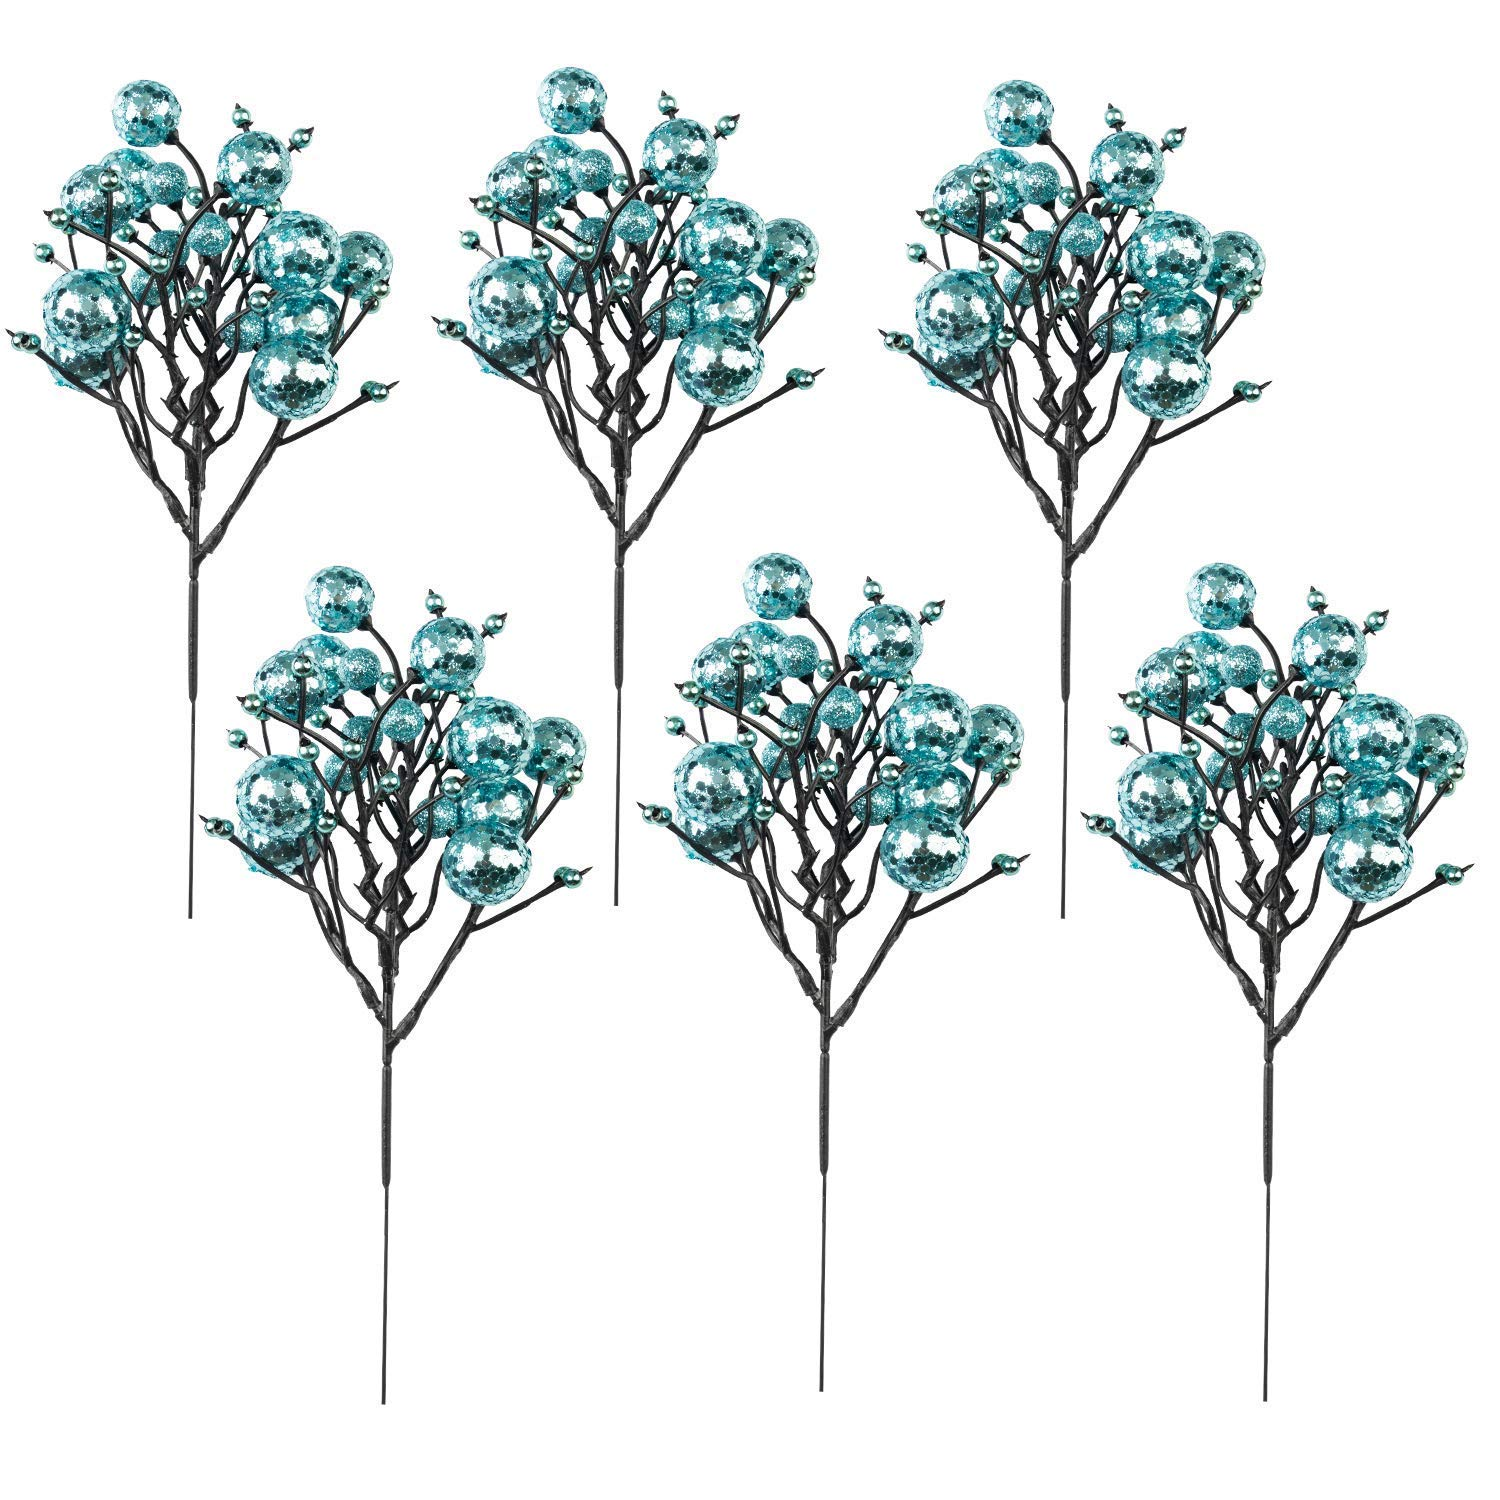 Ideapark-UK Christmas Berry Picks Decorations Artificial Glittered Berries Stems Crafts Tree Ornaments for ChristmasTree Wedding Centerpiece, Pack of 6 (Gold) Ideapark-12